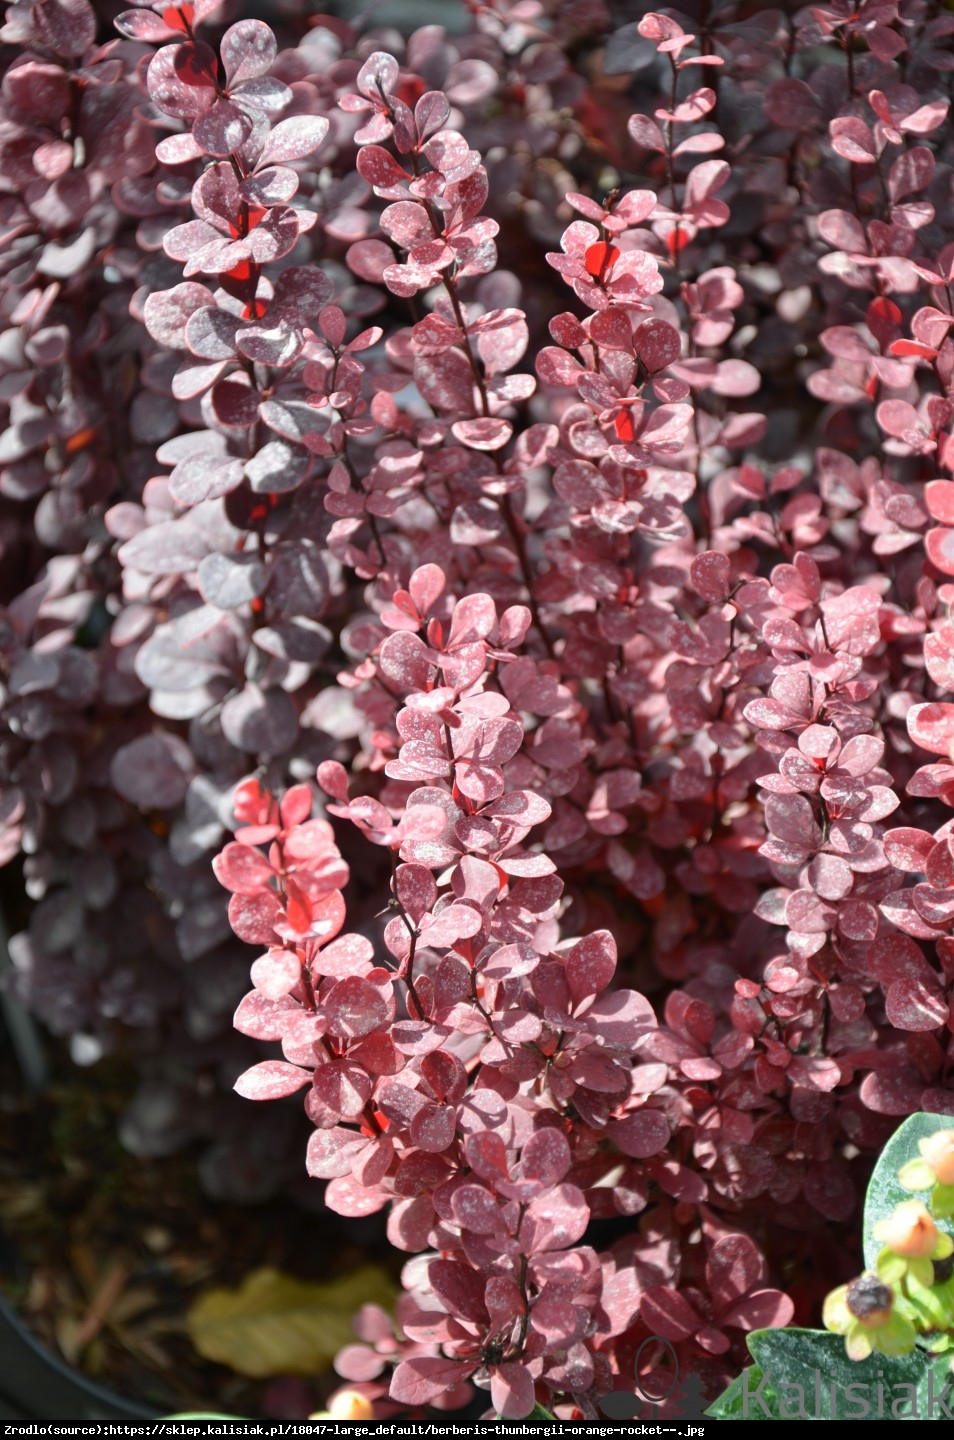 Berberys Thunberga Red Rocket  - Berberis thunbergii  Red Rocket